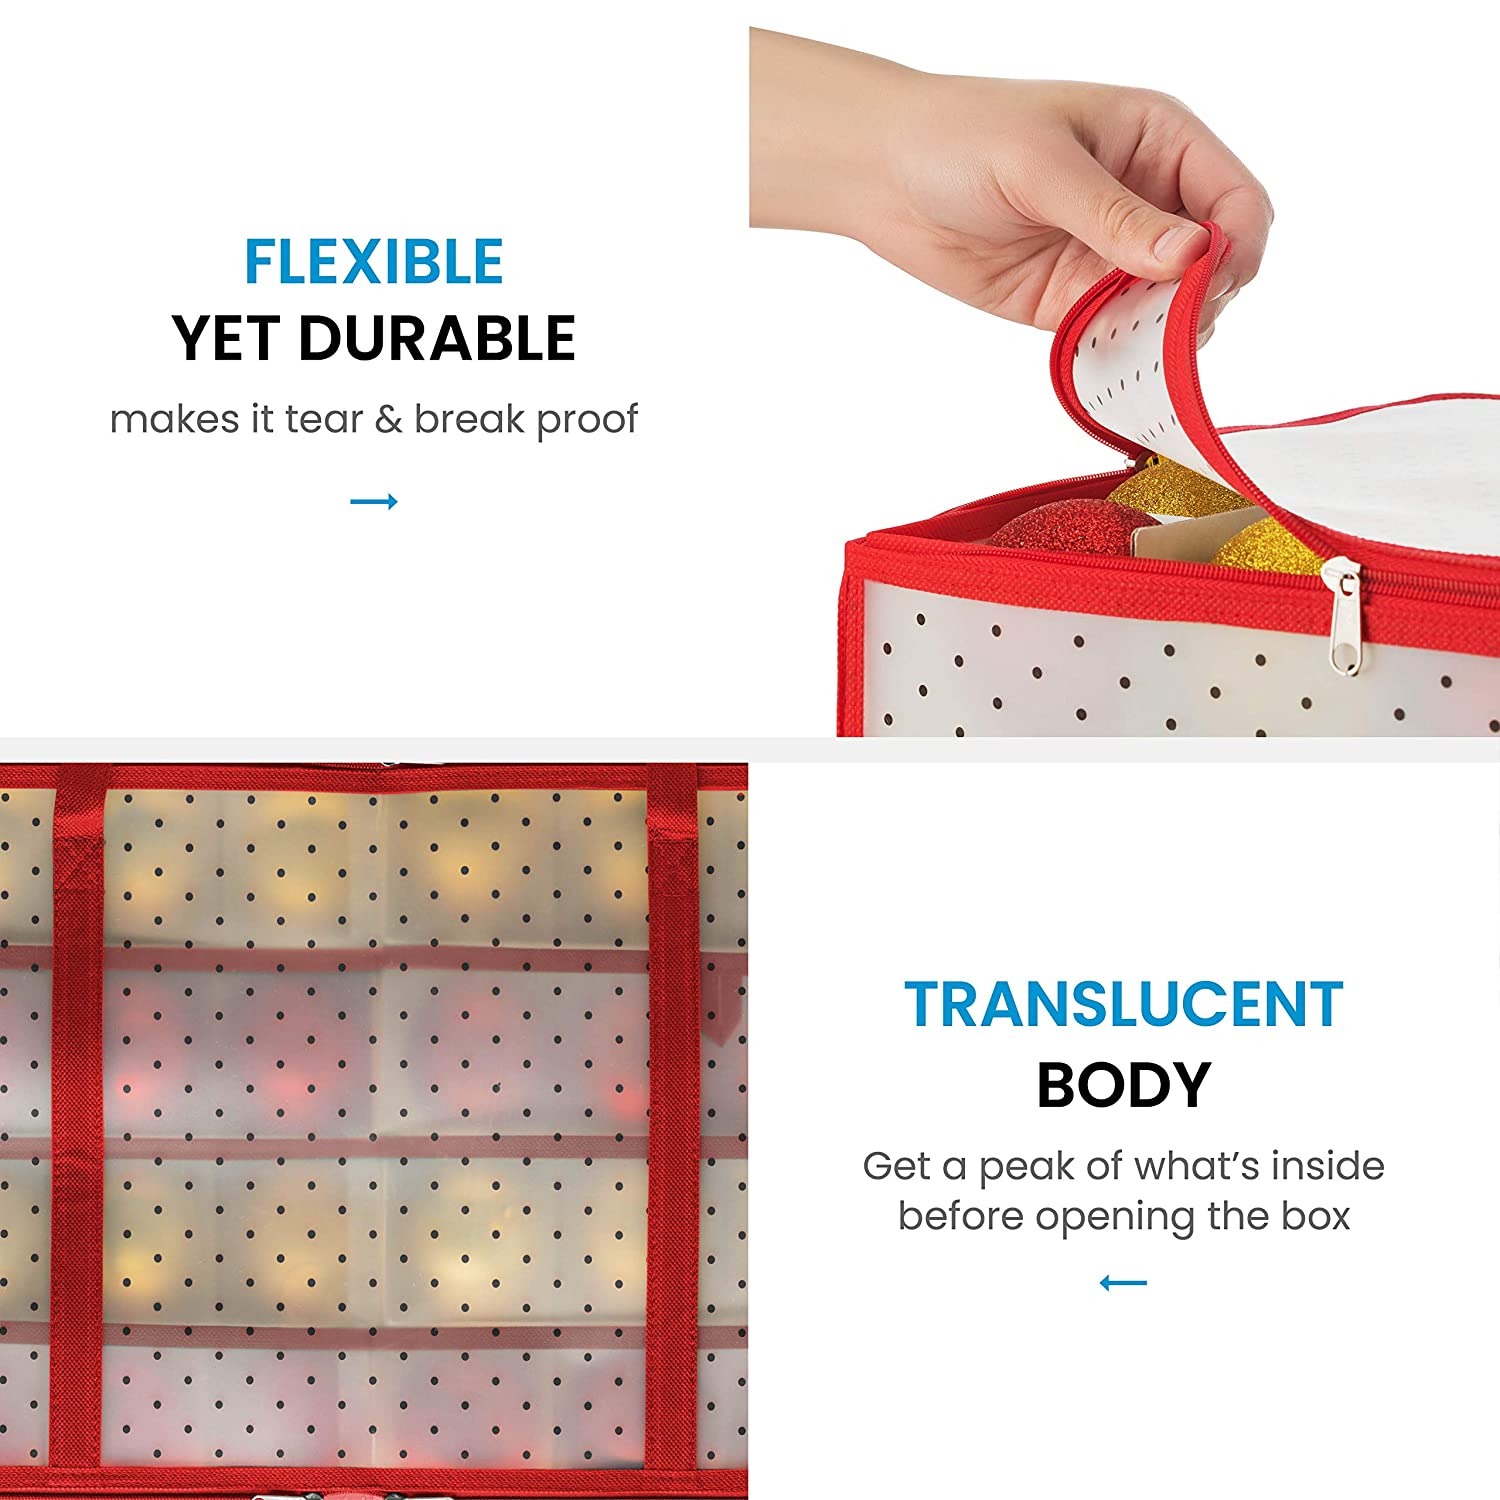 Sturdy Flexible Plastic Keeps 128 Holiday Ornaments Plastic Christmas Ornament Storage Box Large with 2 Sided Dual Zipper Closure Xmas Decorations Accessories 3 Compartments